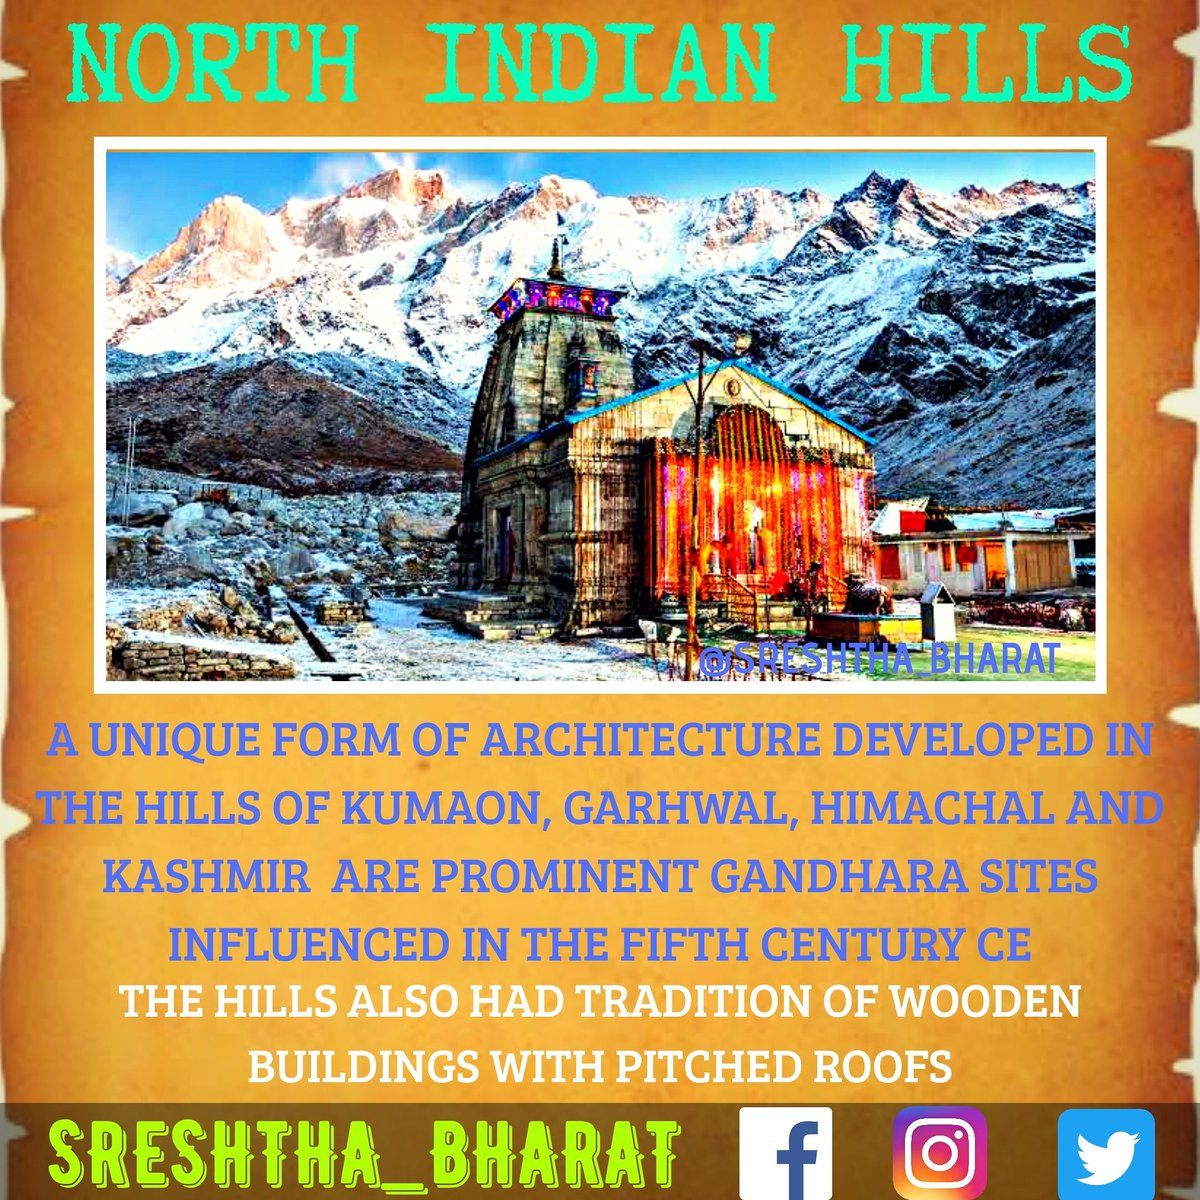 #temple_architecture  We will be getting closer to the Great Temple Architecture of our Sreshtha Bharat  Follow @Sreshthabharat on Facebook | Instagram | Twitter 🙏  #indianculture #indianarchitecture #hinduarchitecture #temple  #worship #templeworship #dravida #mandir #devasthan https://t.co/qdb6d7CMqV